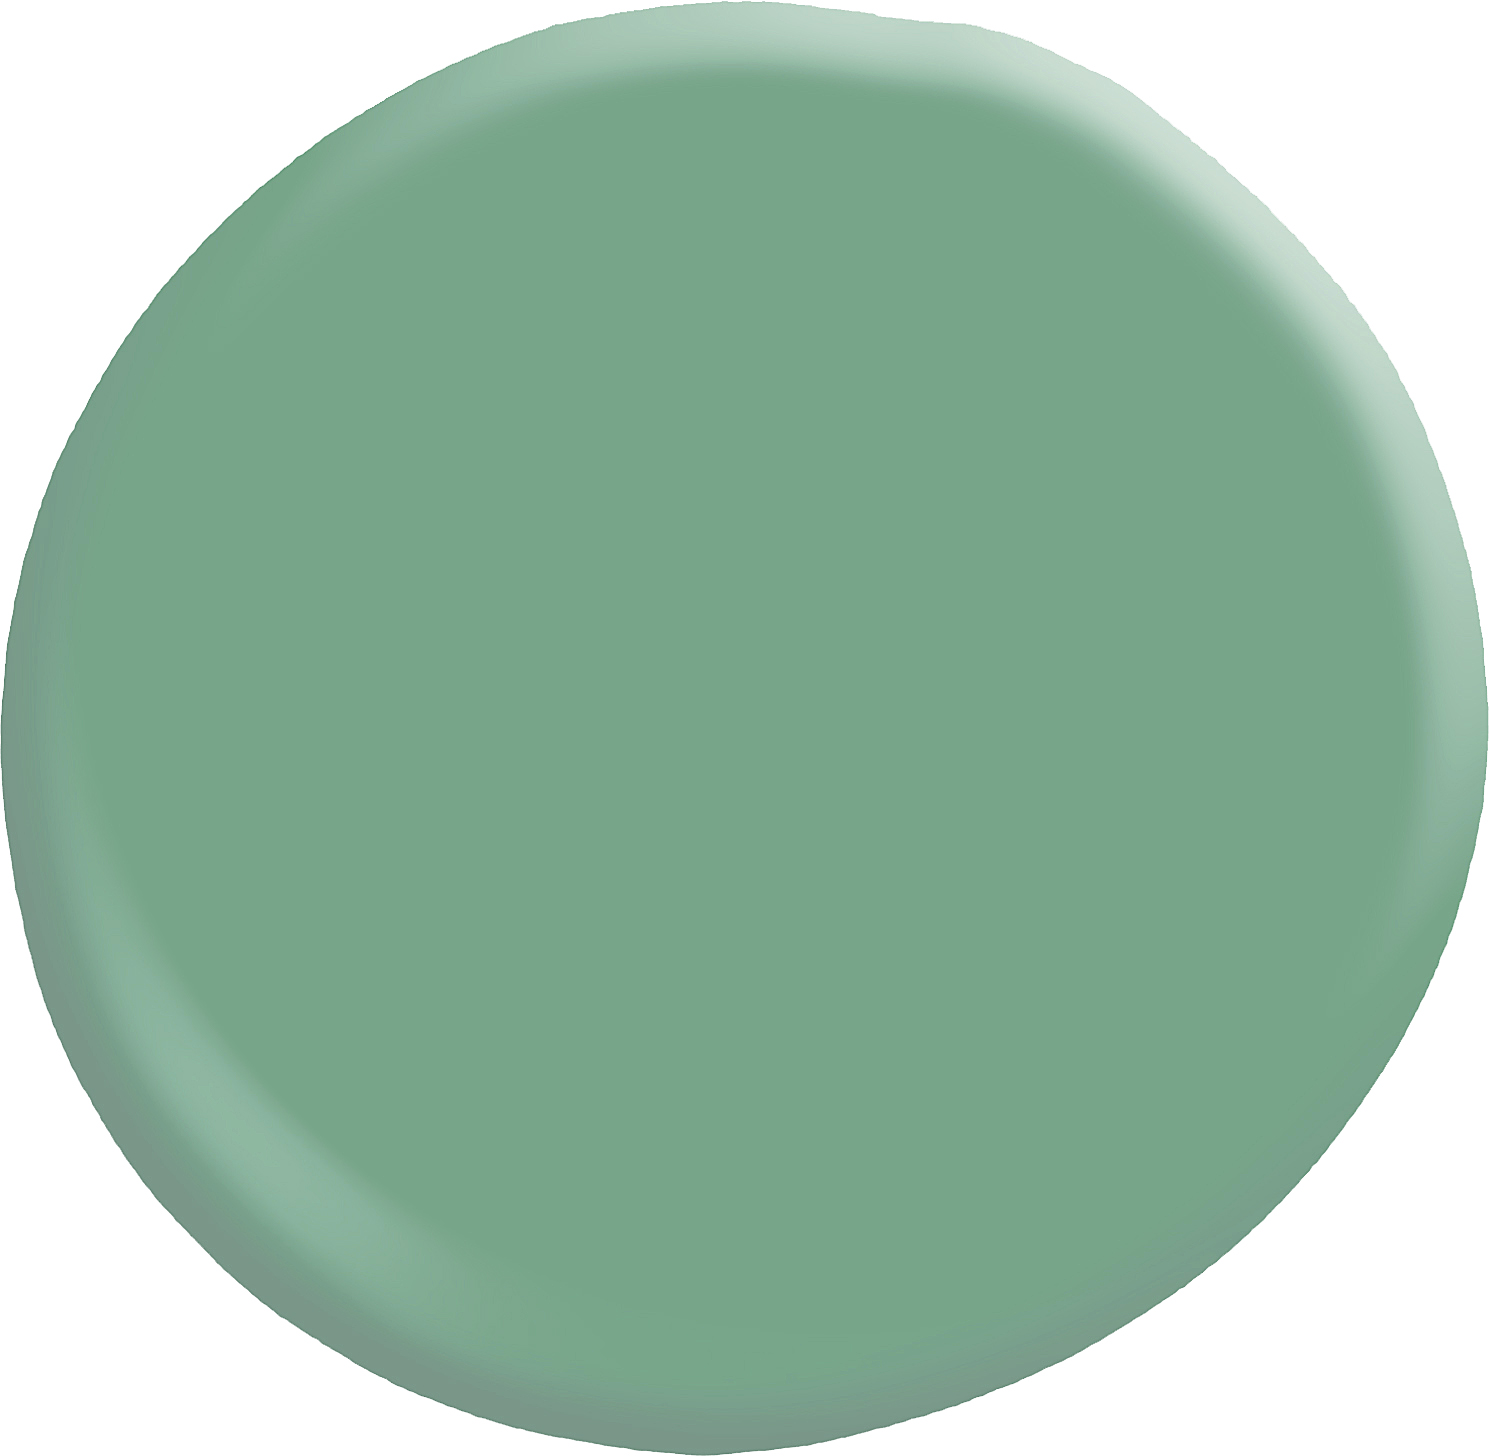 Valspar's Salamander (6001-8B) paint in an eggshell finish